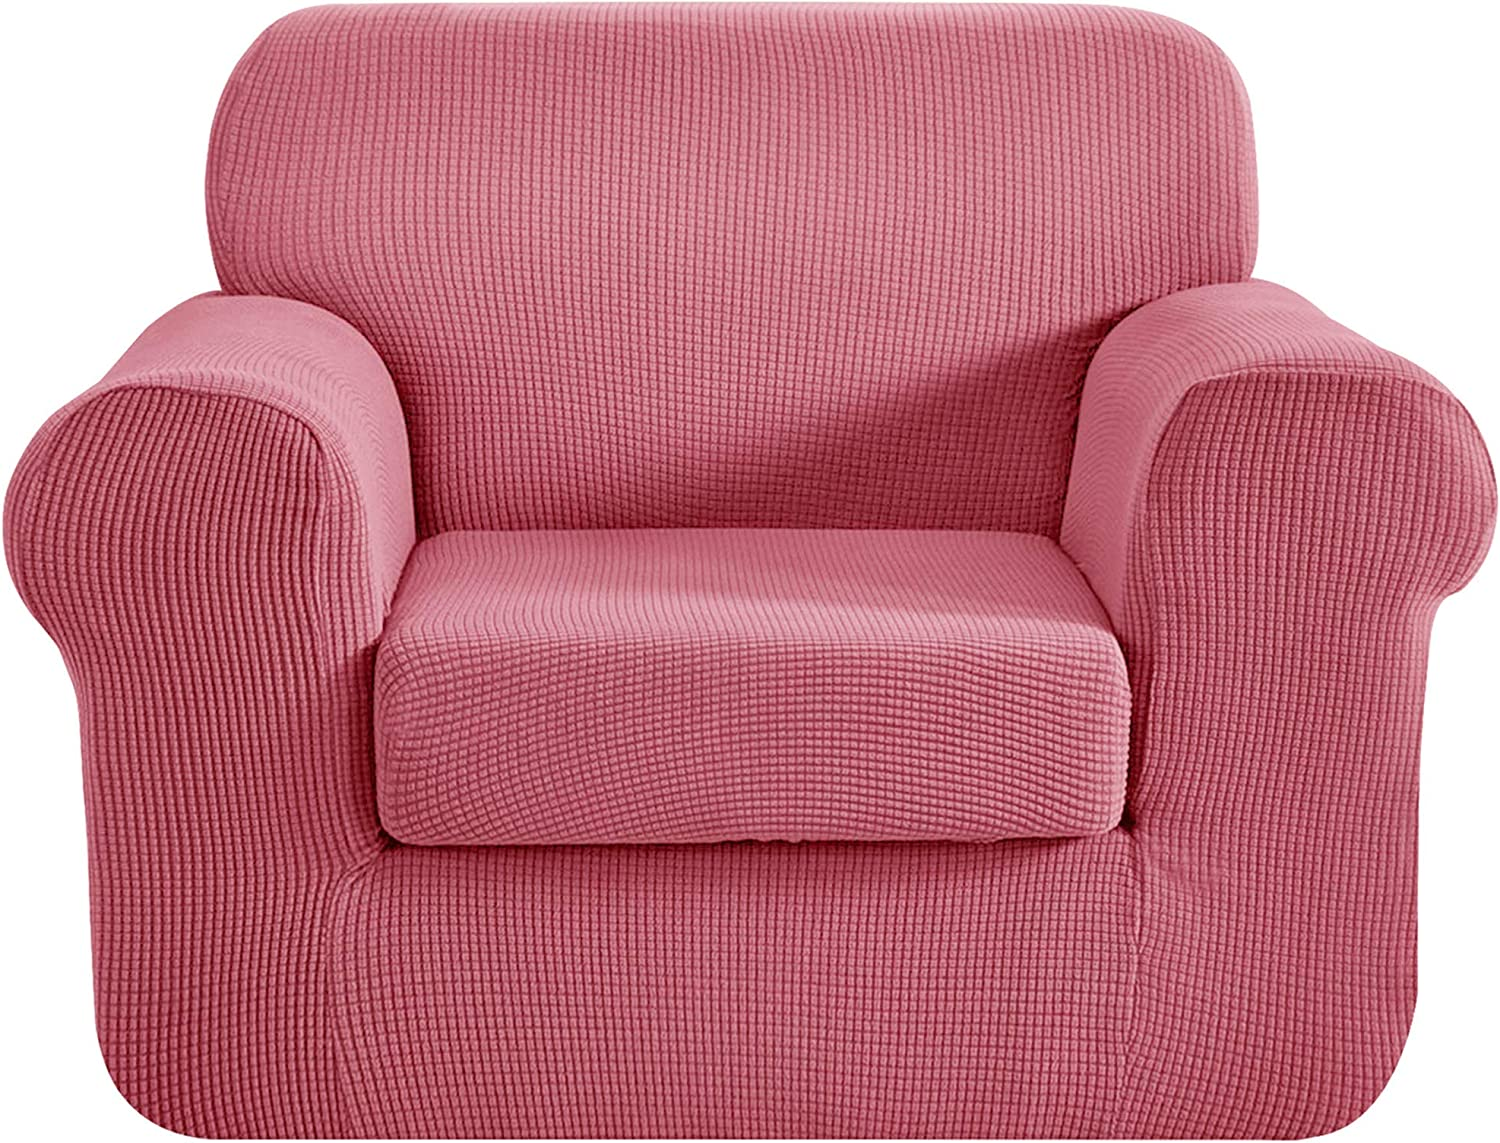 CHUN YI Chair Sofa Slipcover 2-Piece Couch Cover Furniture Protector, 1 Seater Coat Soft with Elastic Bottom, Checks Spandex Jacquard Fabric, Small, Coral Pink